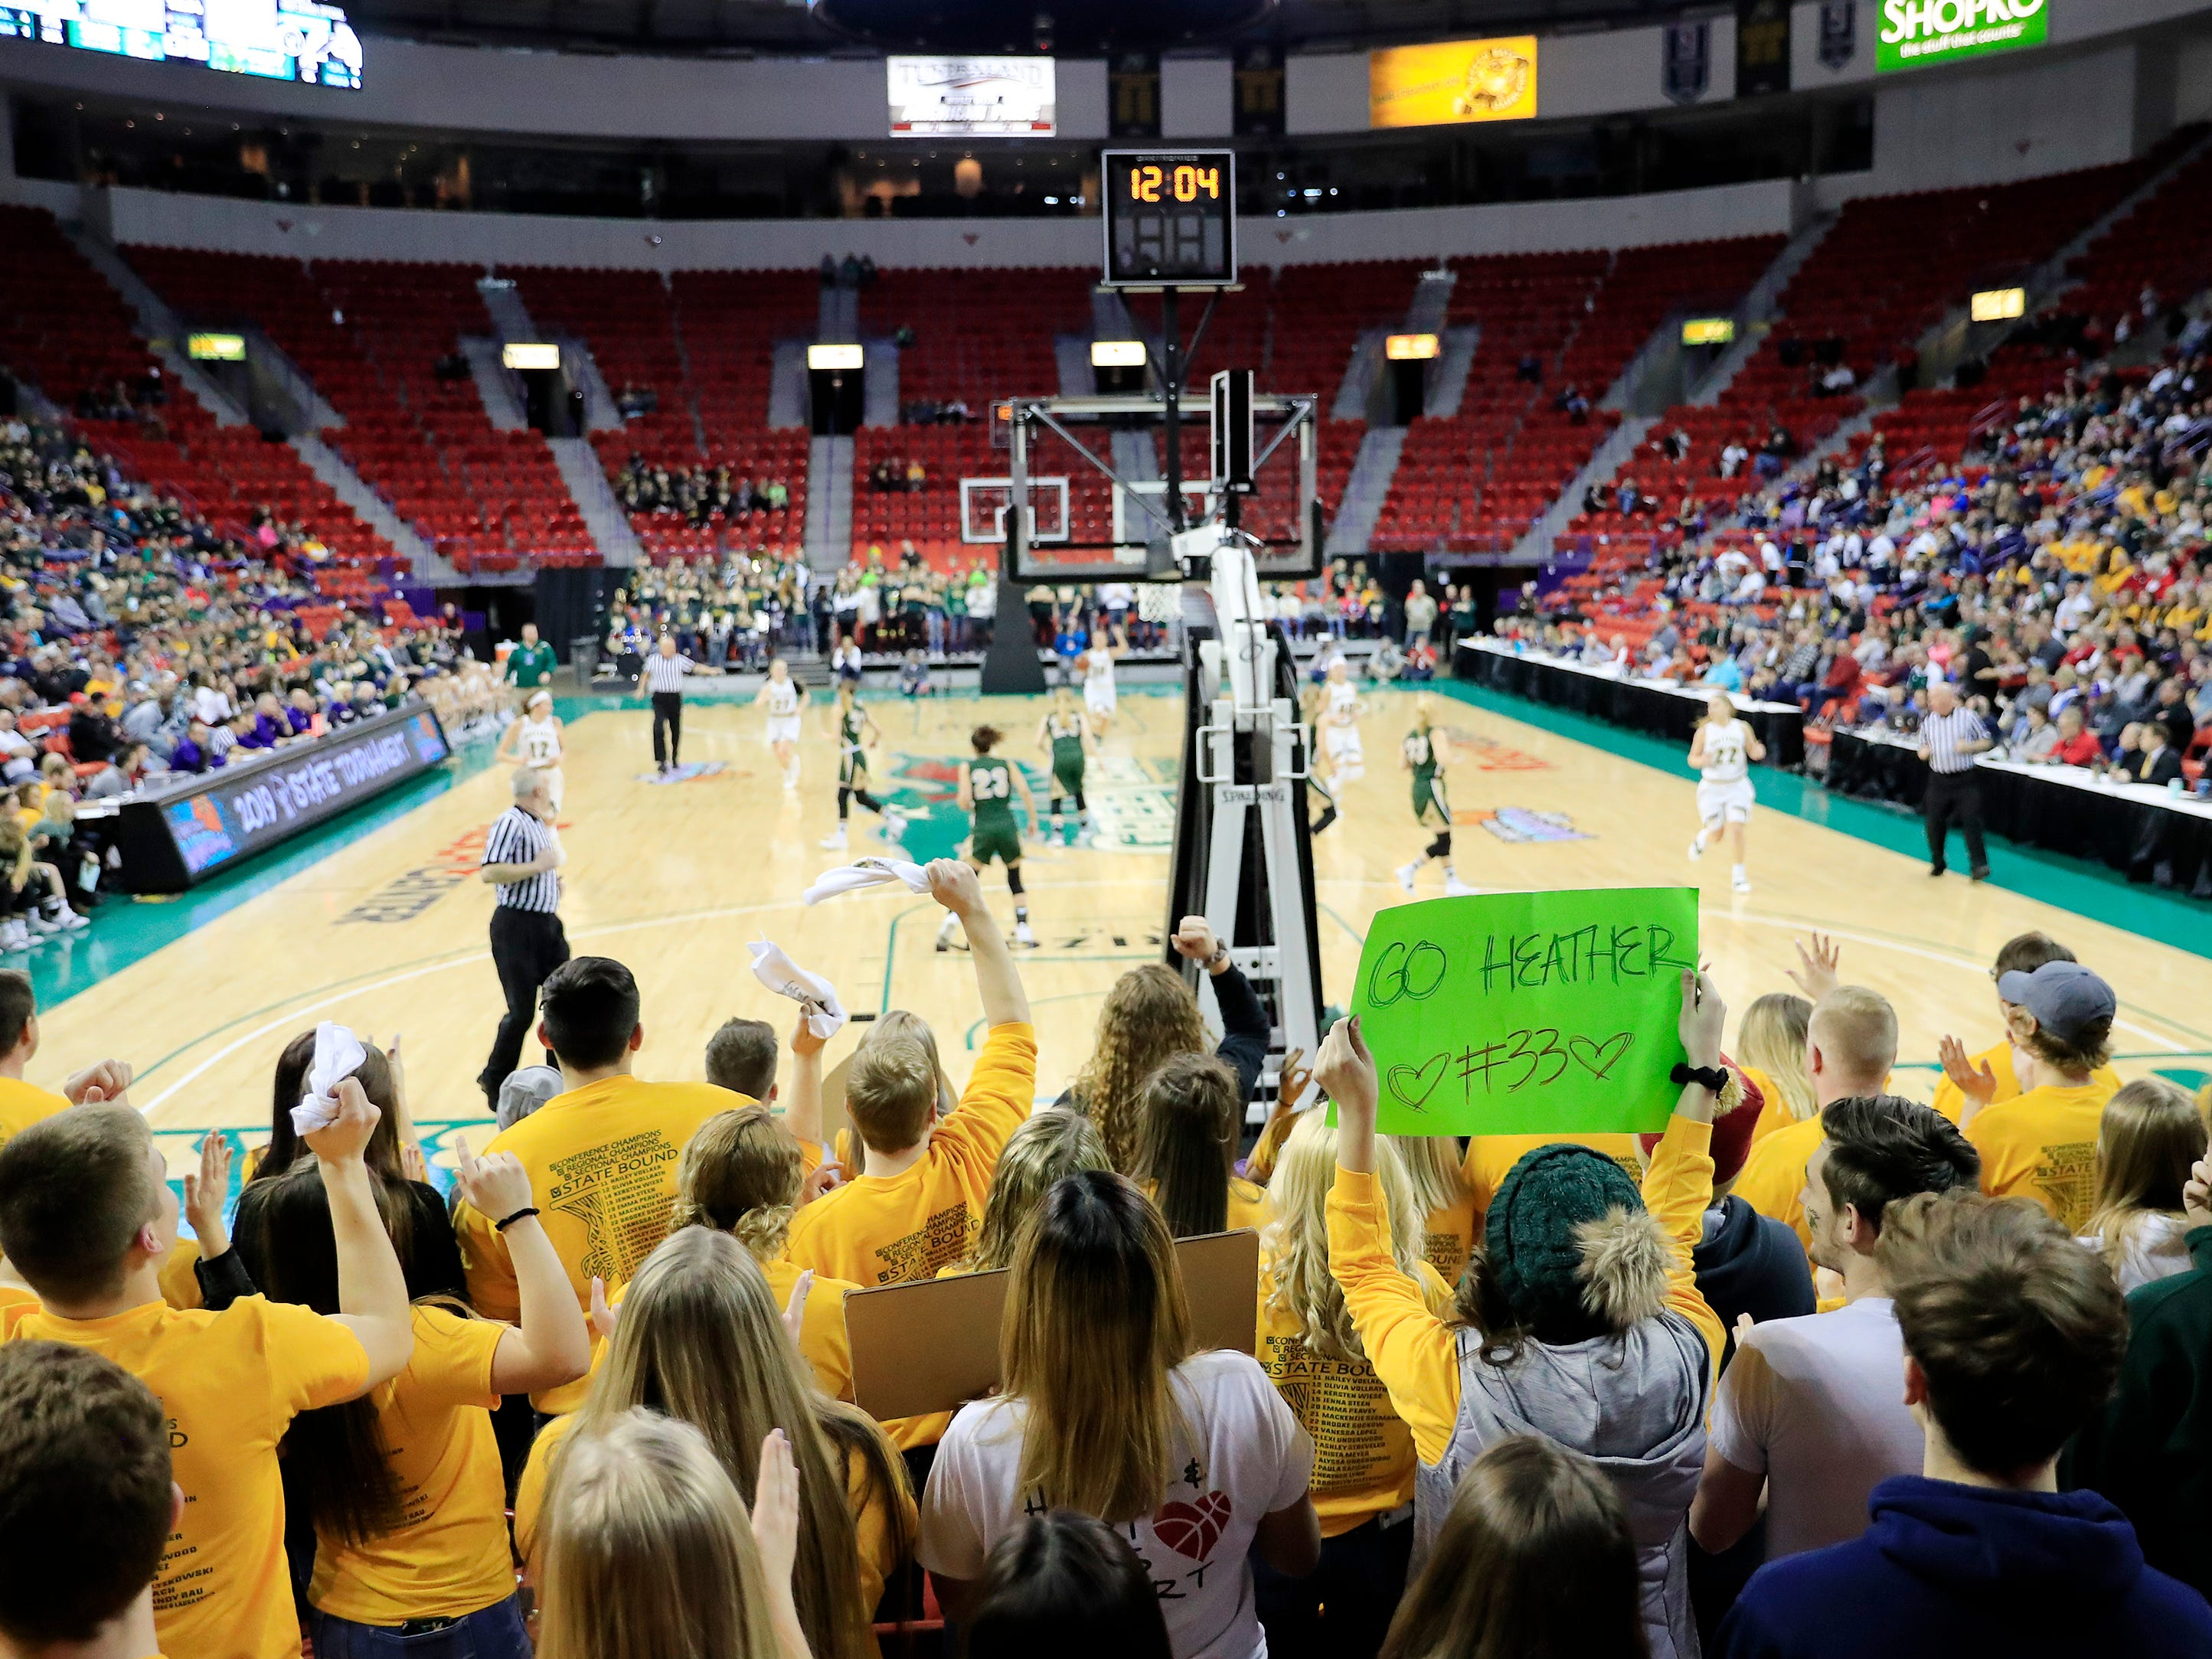 Colby fans cheer in a Division 3 semifinal at the WIAA state girls basketball tournament at the Resch Center on Thursday, March 7, 2019, in Ashwaubenon, Wis.